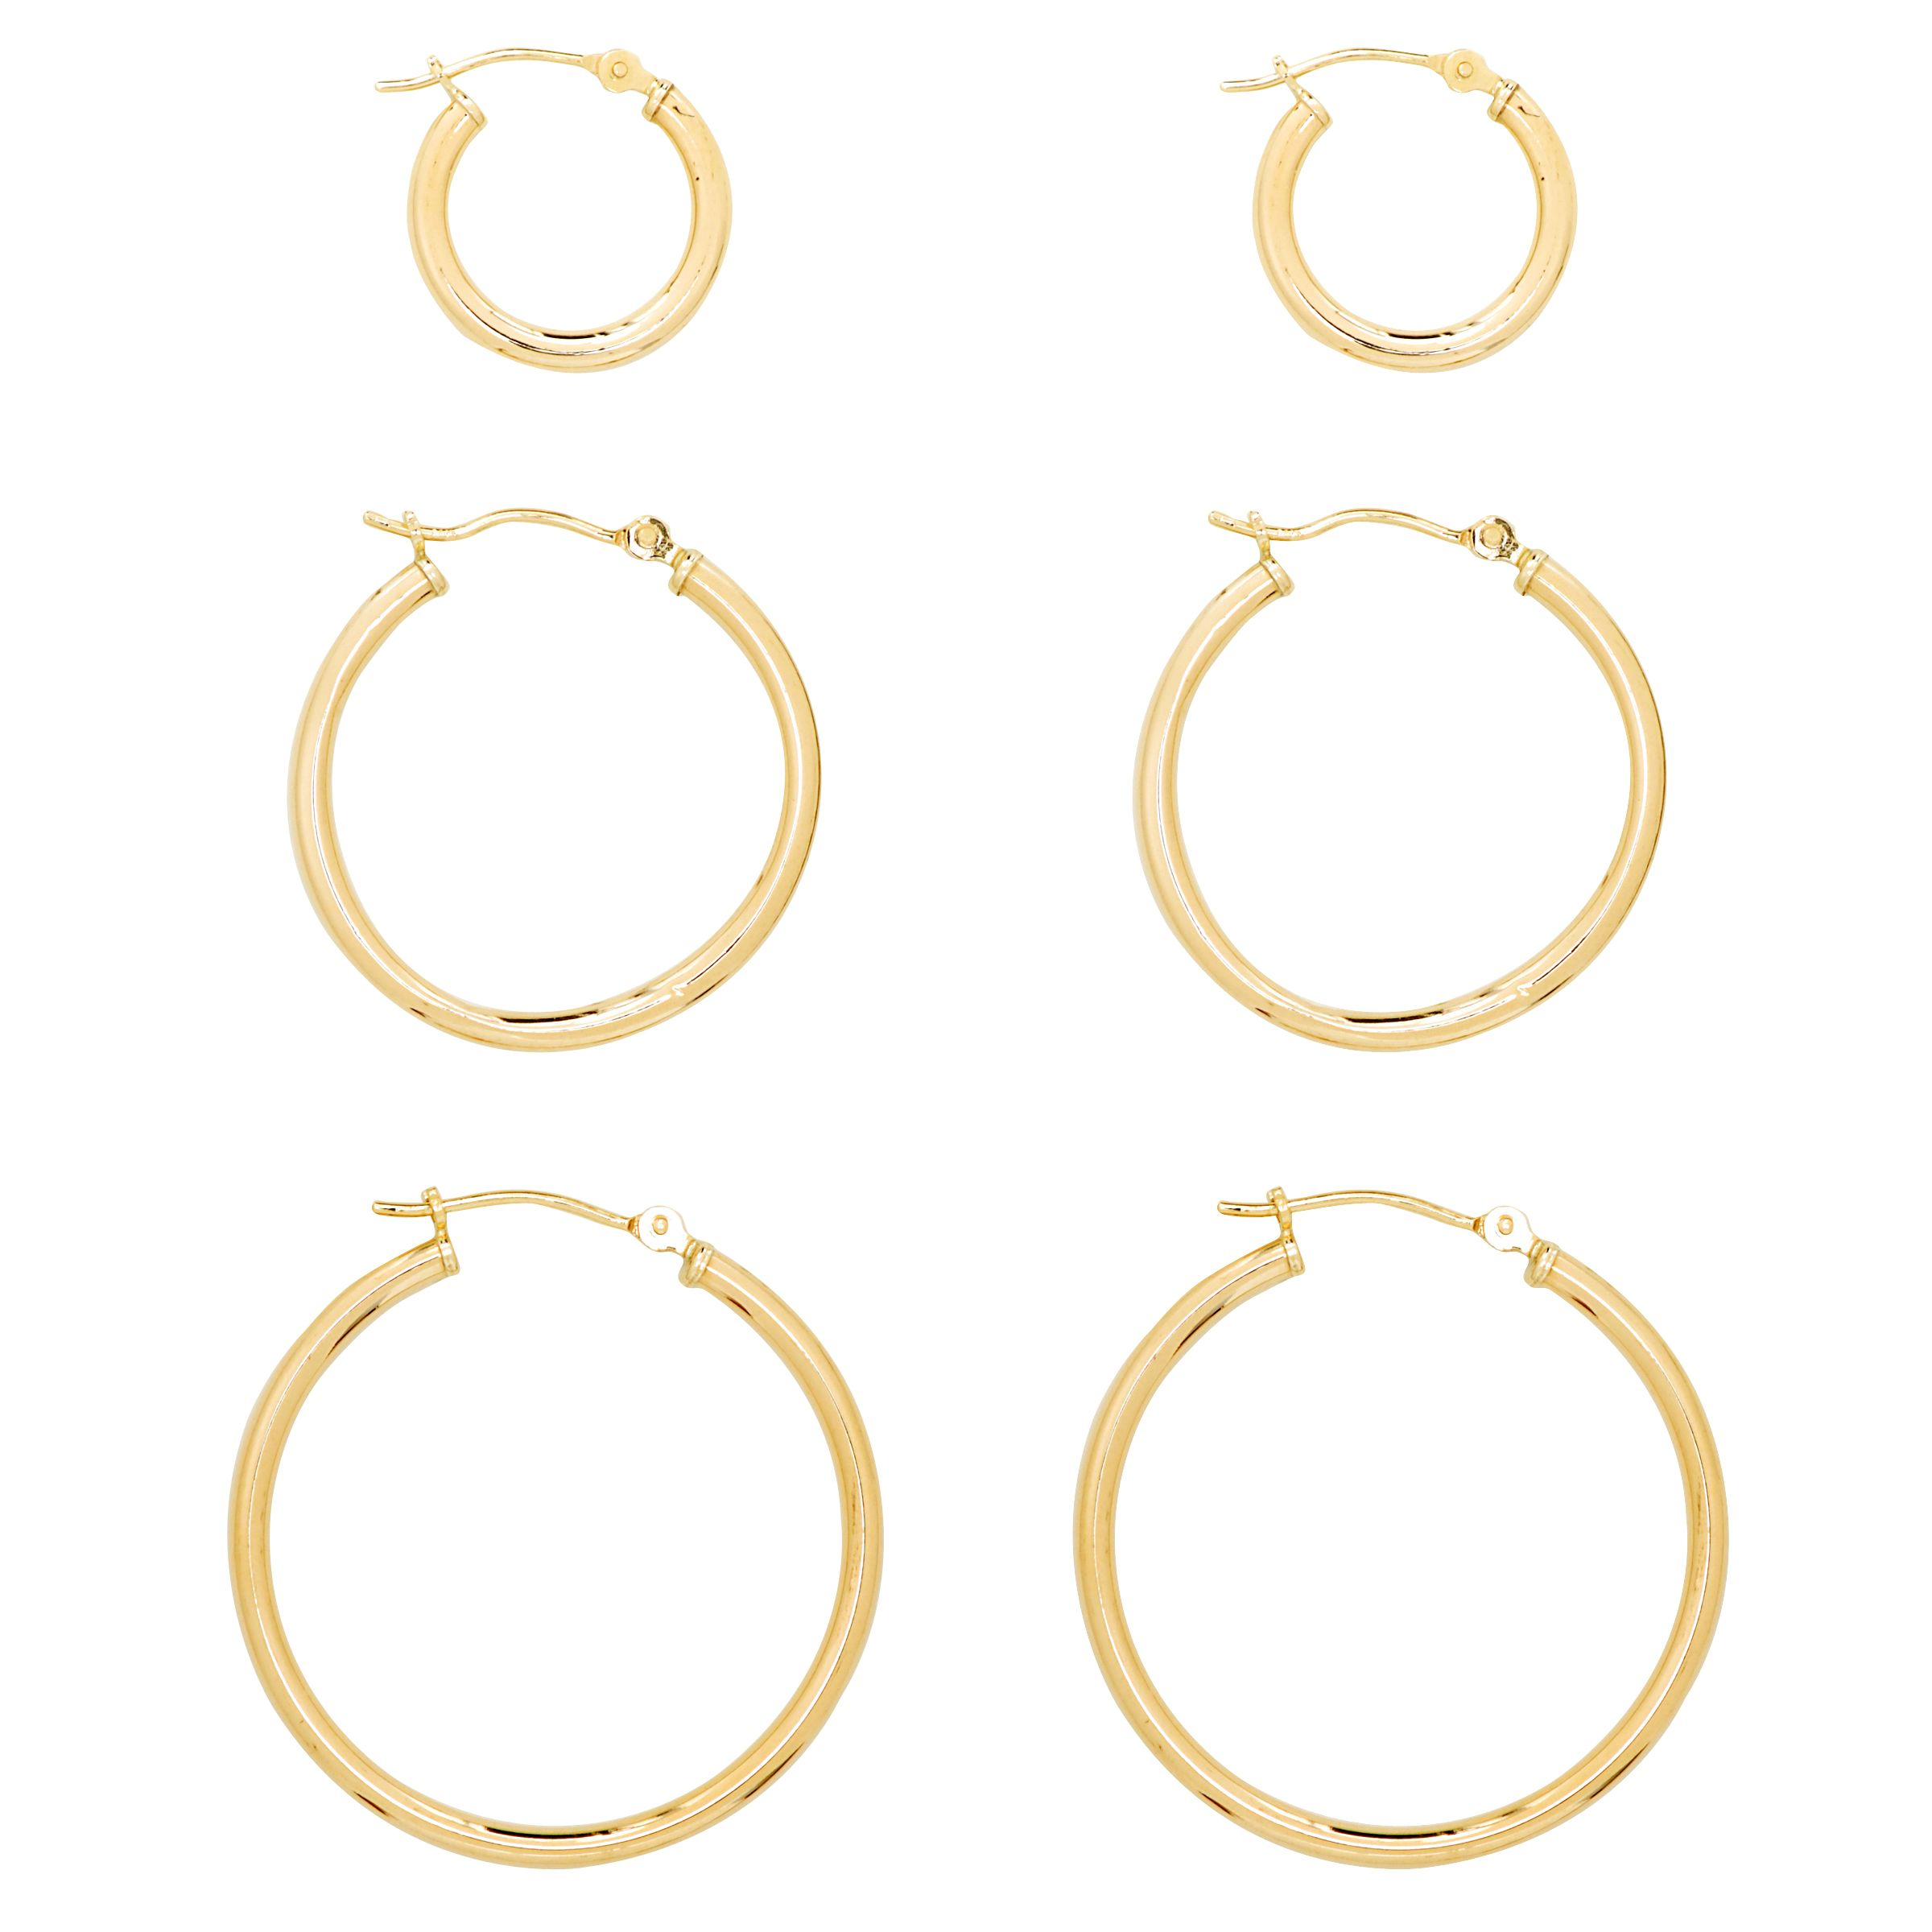 3 Pair Hoop Earring Set. 10K Yellow Gold